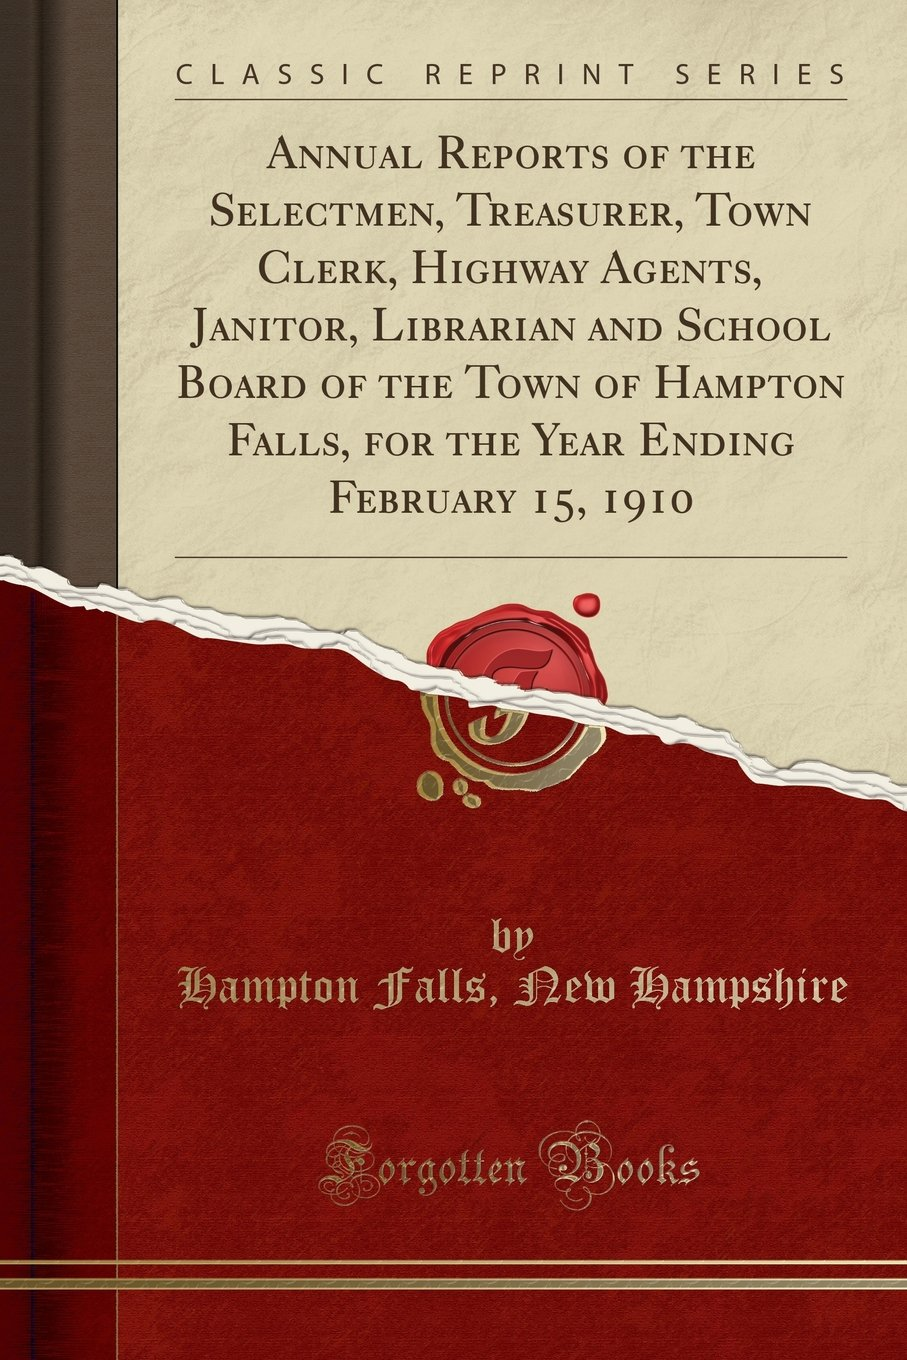 Download Annual Reports of the Selectmen, Treasurer, Town Clerk, Highway Agents, Janitor, Librarian and School Board of the Town of Hampton Falls, for the Year Ending February 15, 1910 (Classic Reprint) pdf